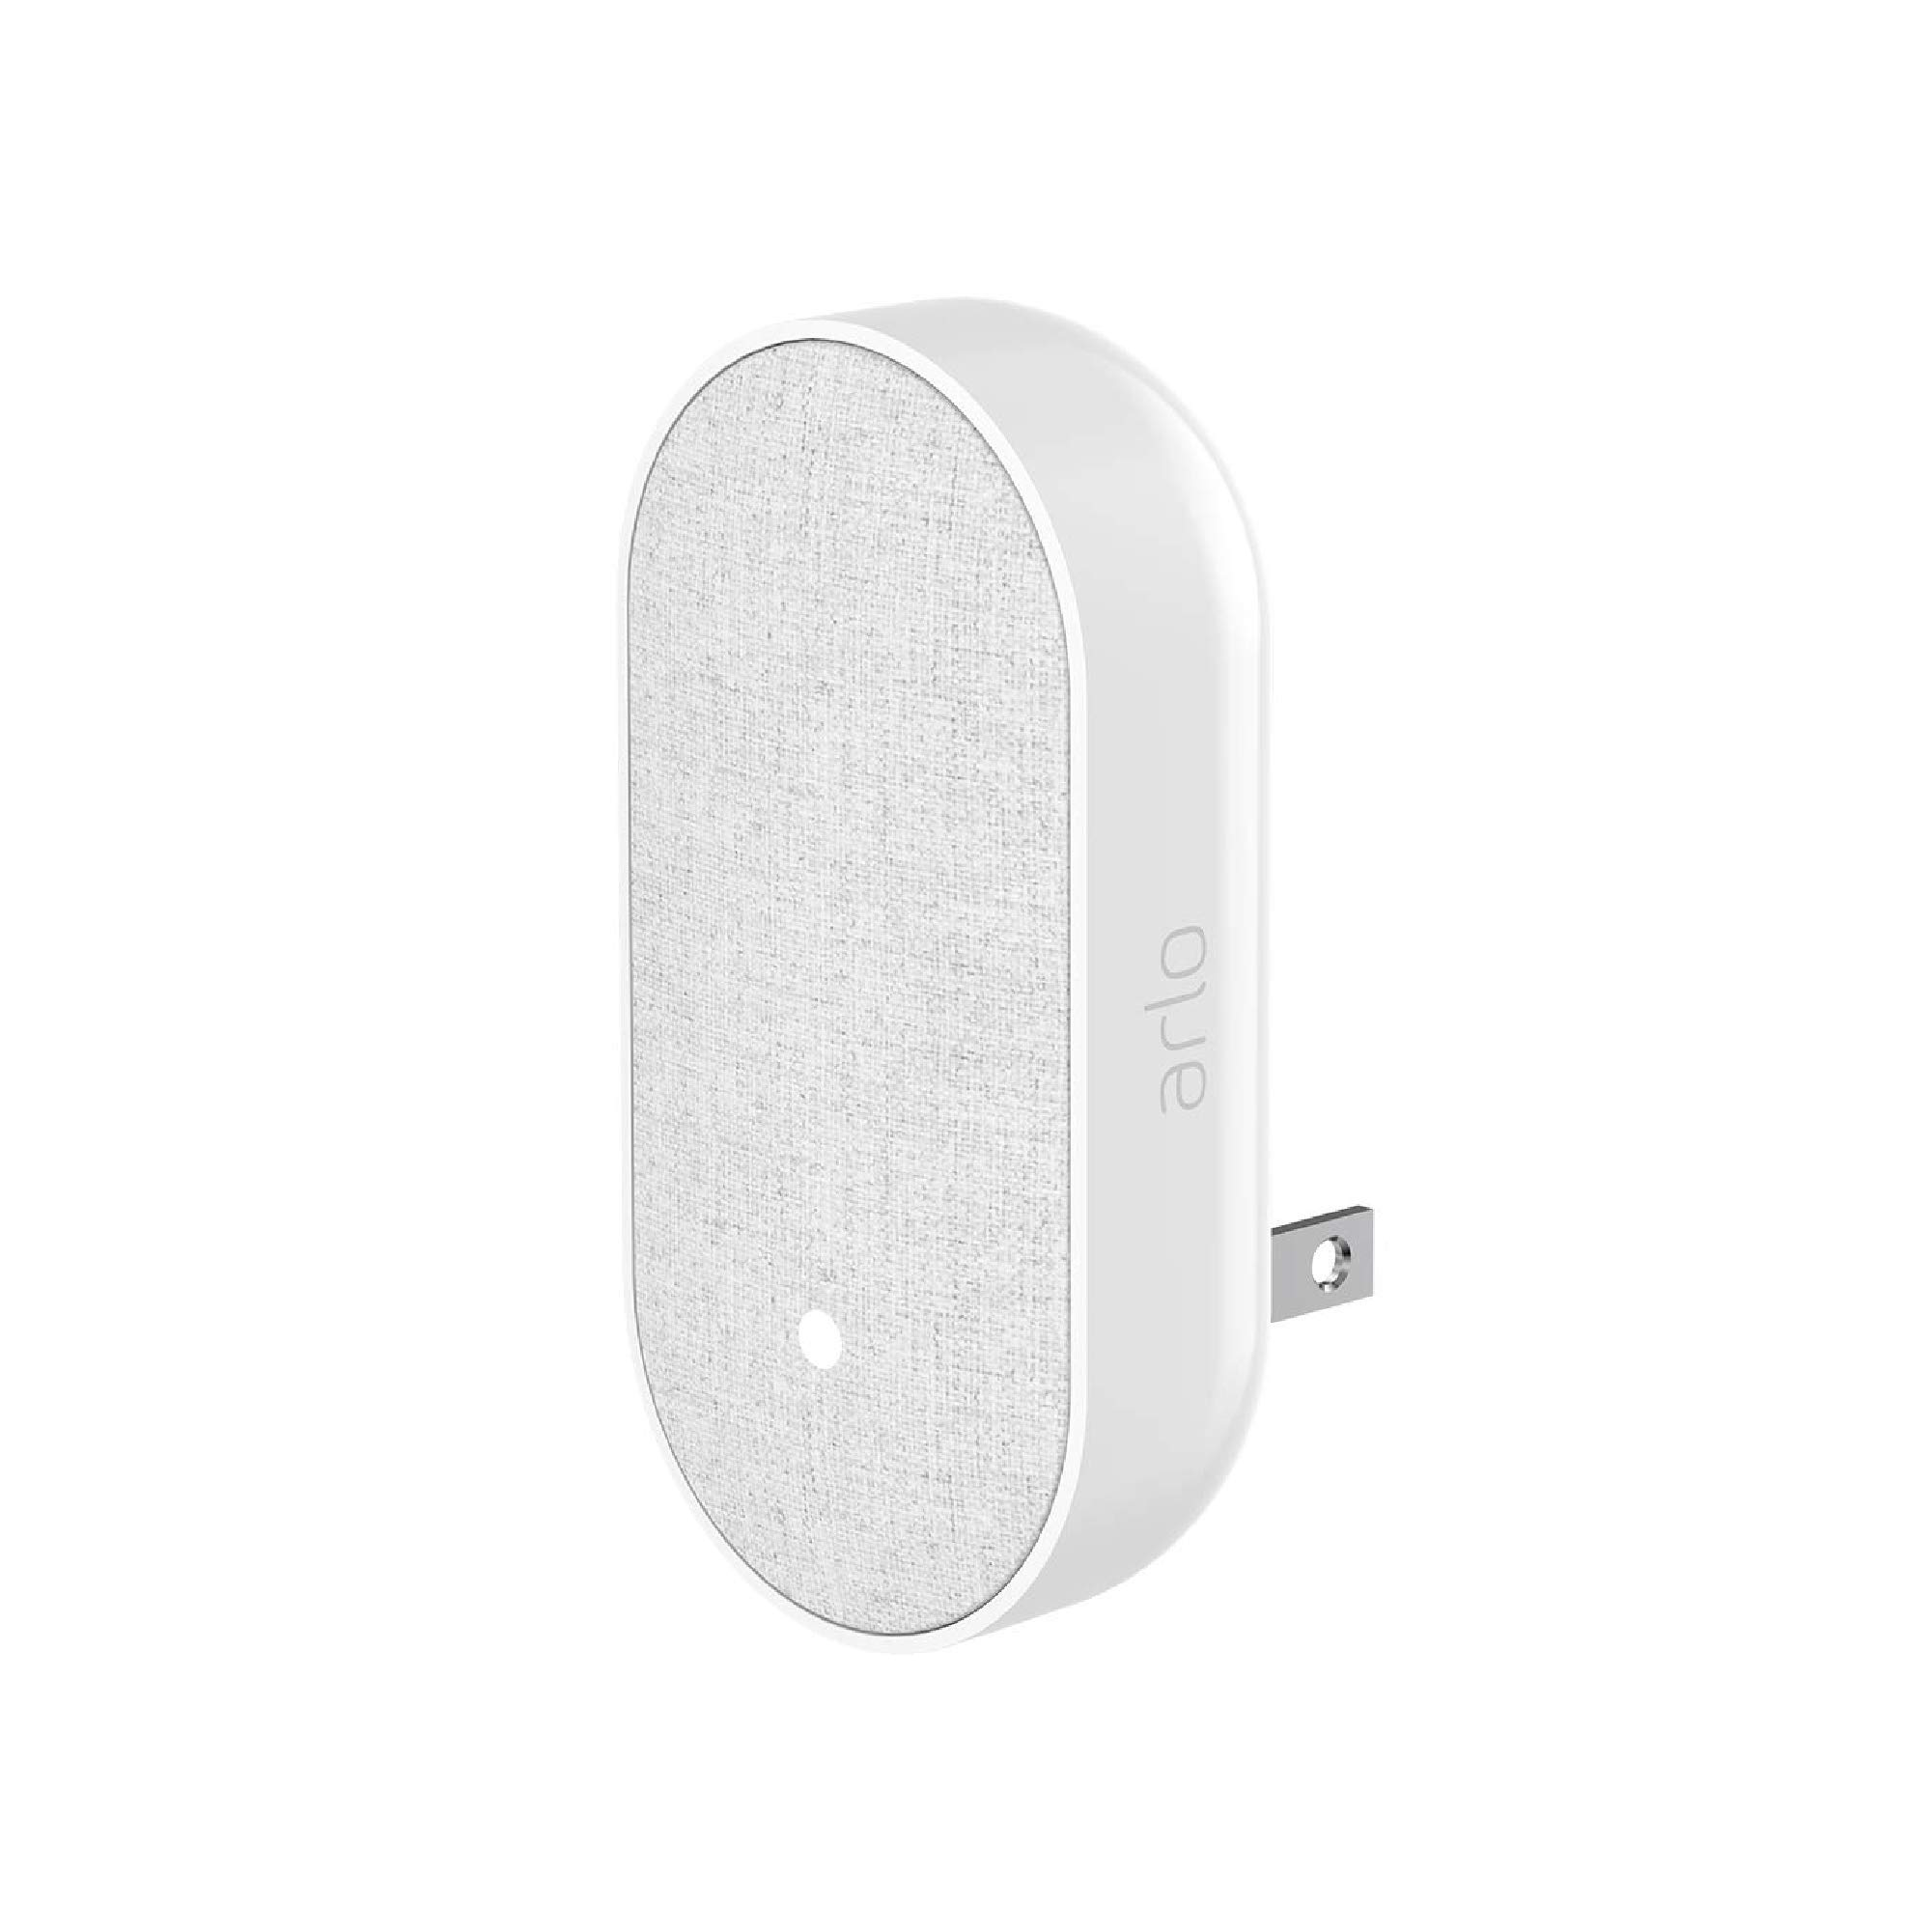 Arlo Chime - Wire-Free, Smart Home Security, Siren and Silent Mode (AC1001)